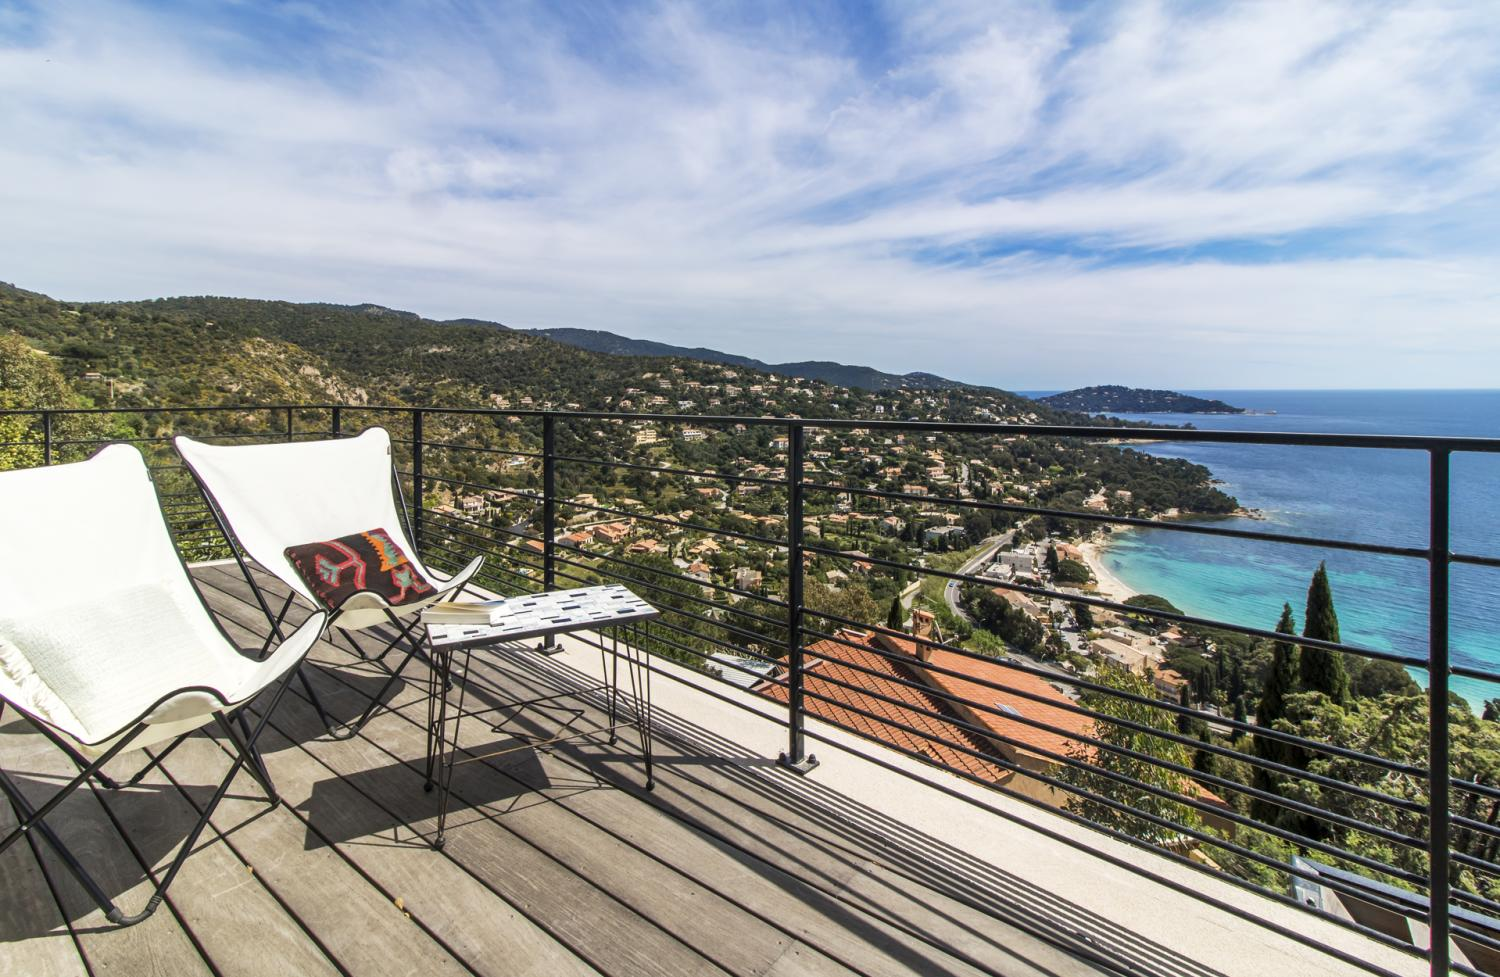 Balcony chairs with sea view, Aigue Marine, St Tropez Var, Cavaliere.